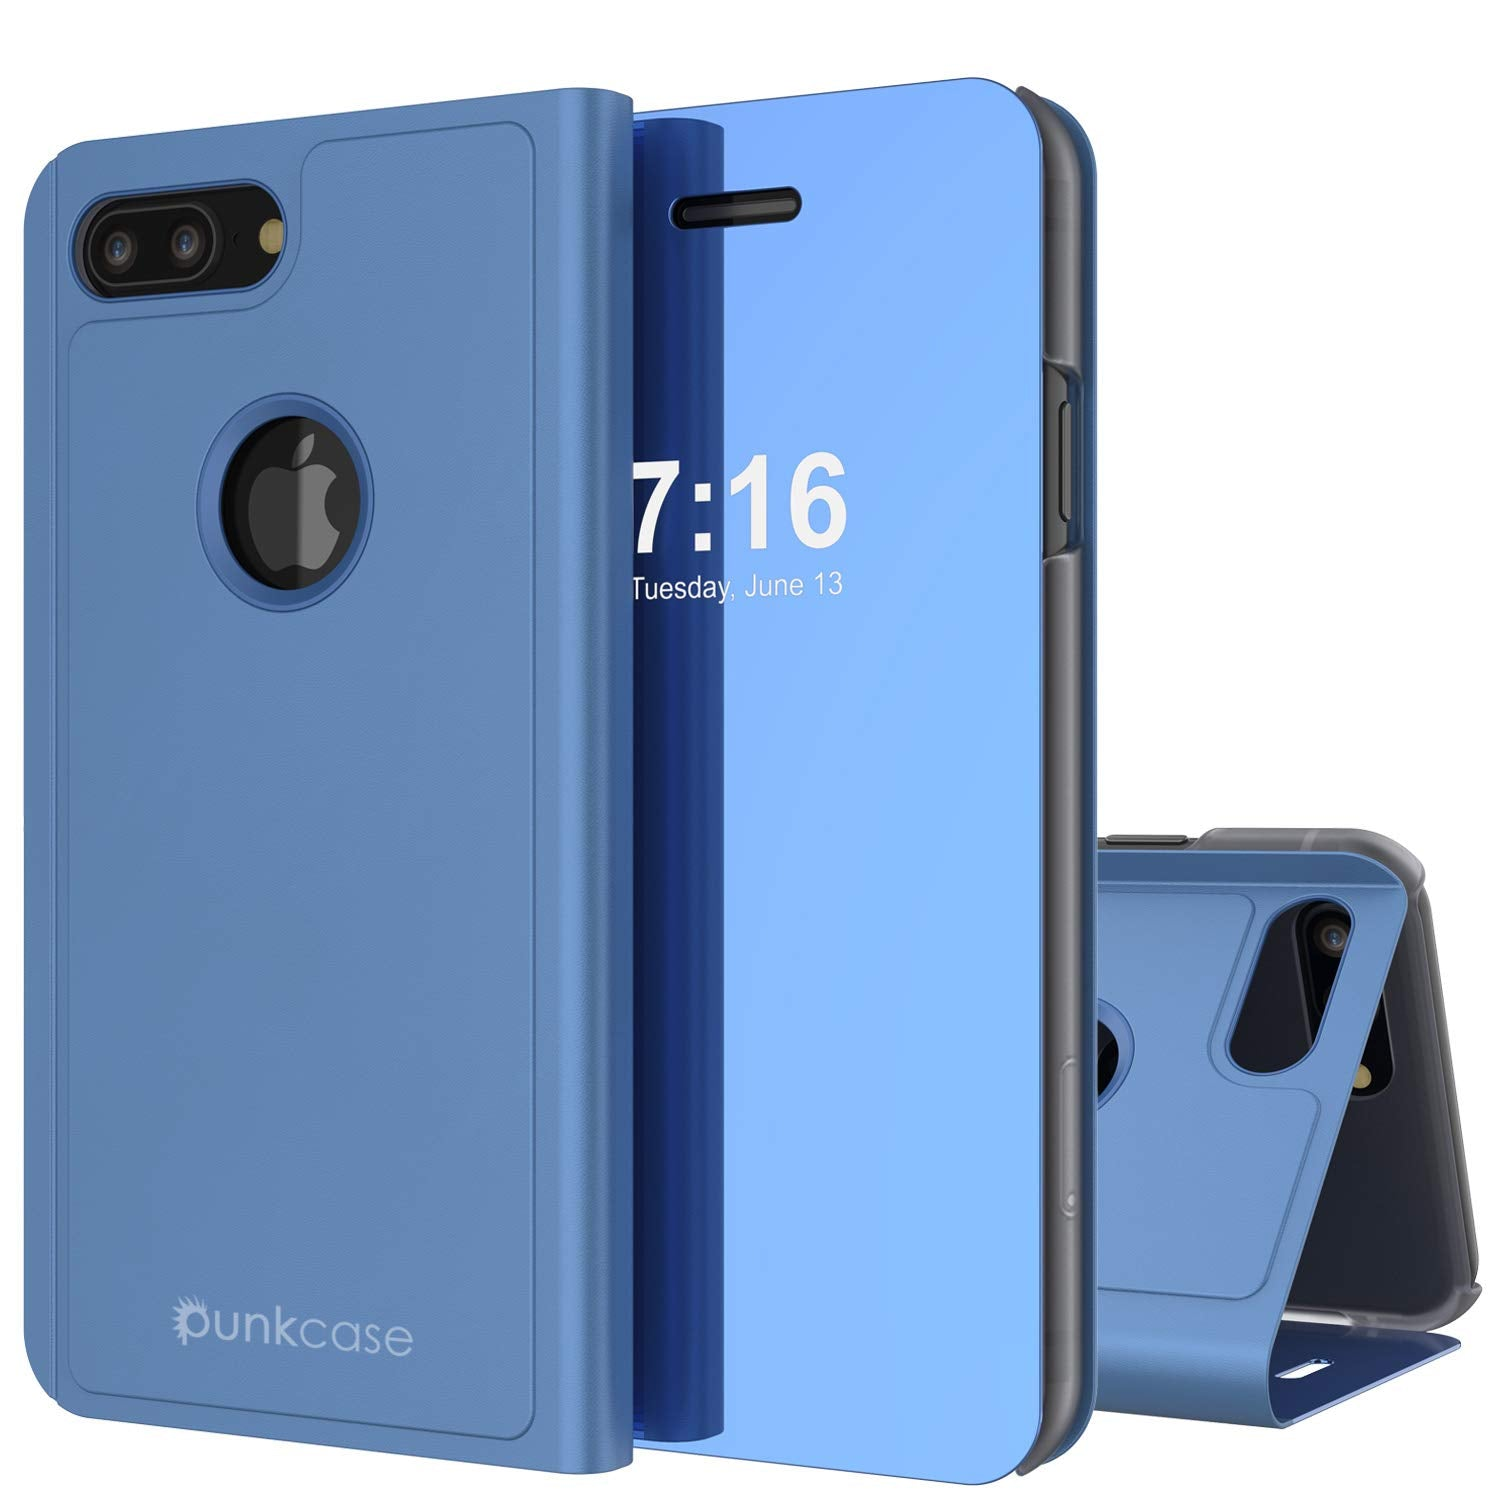 Punkcase iPhone 8+ Plus Reflector Case Protective Flip Cover [Blue]